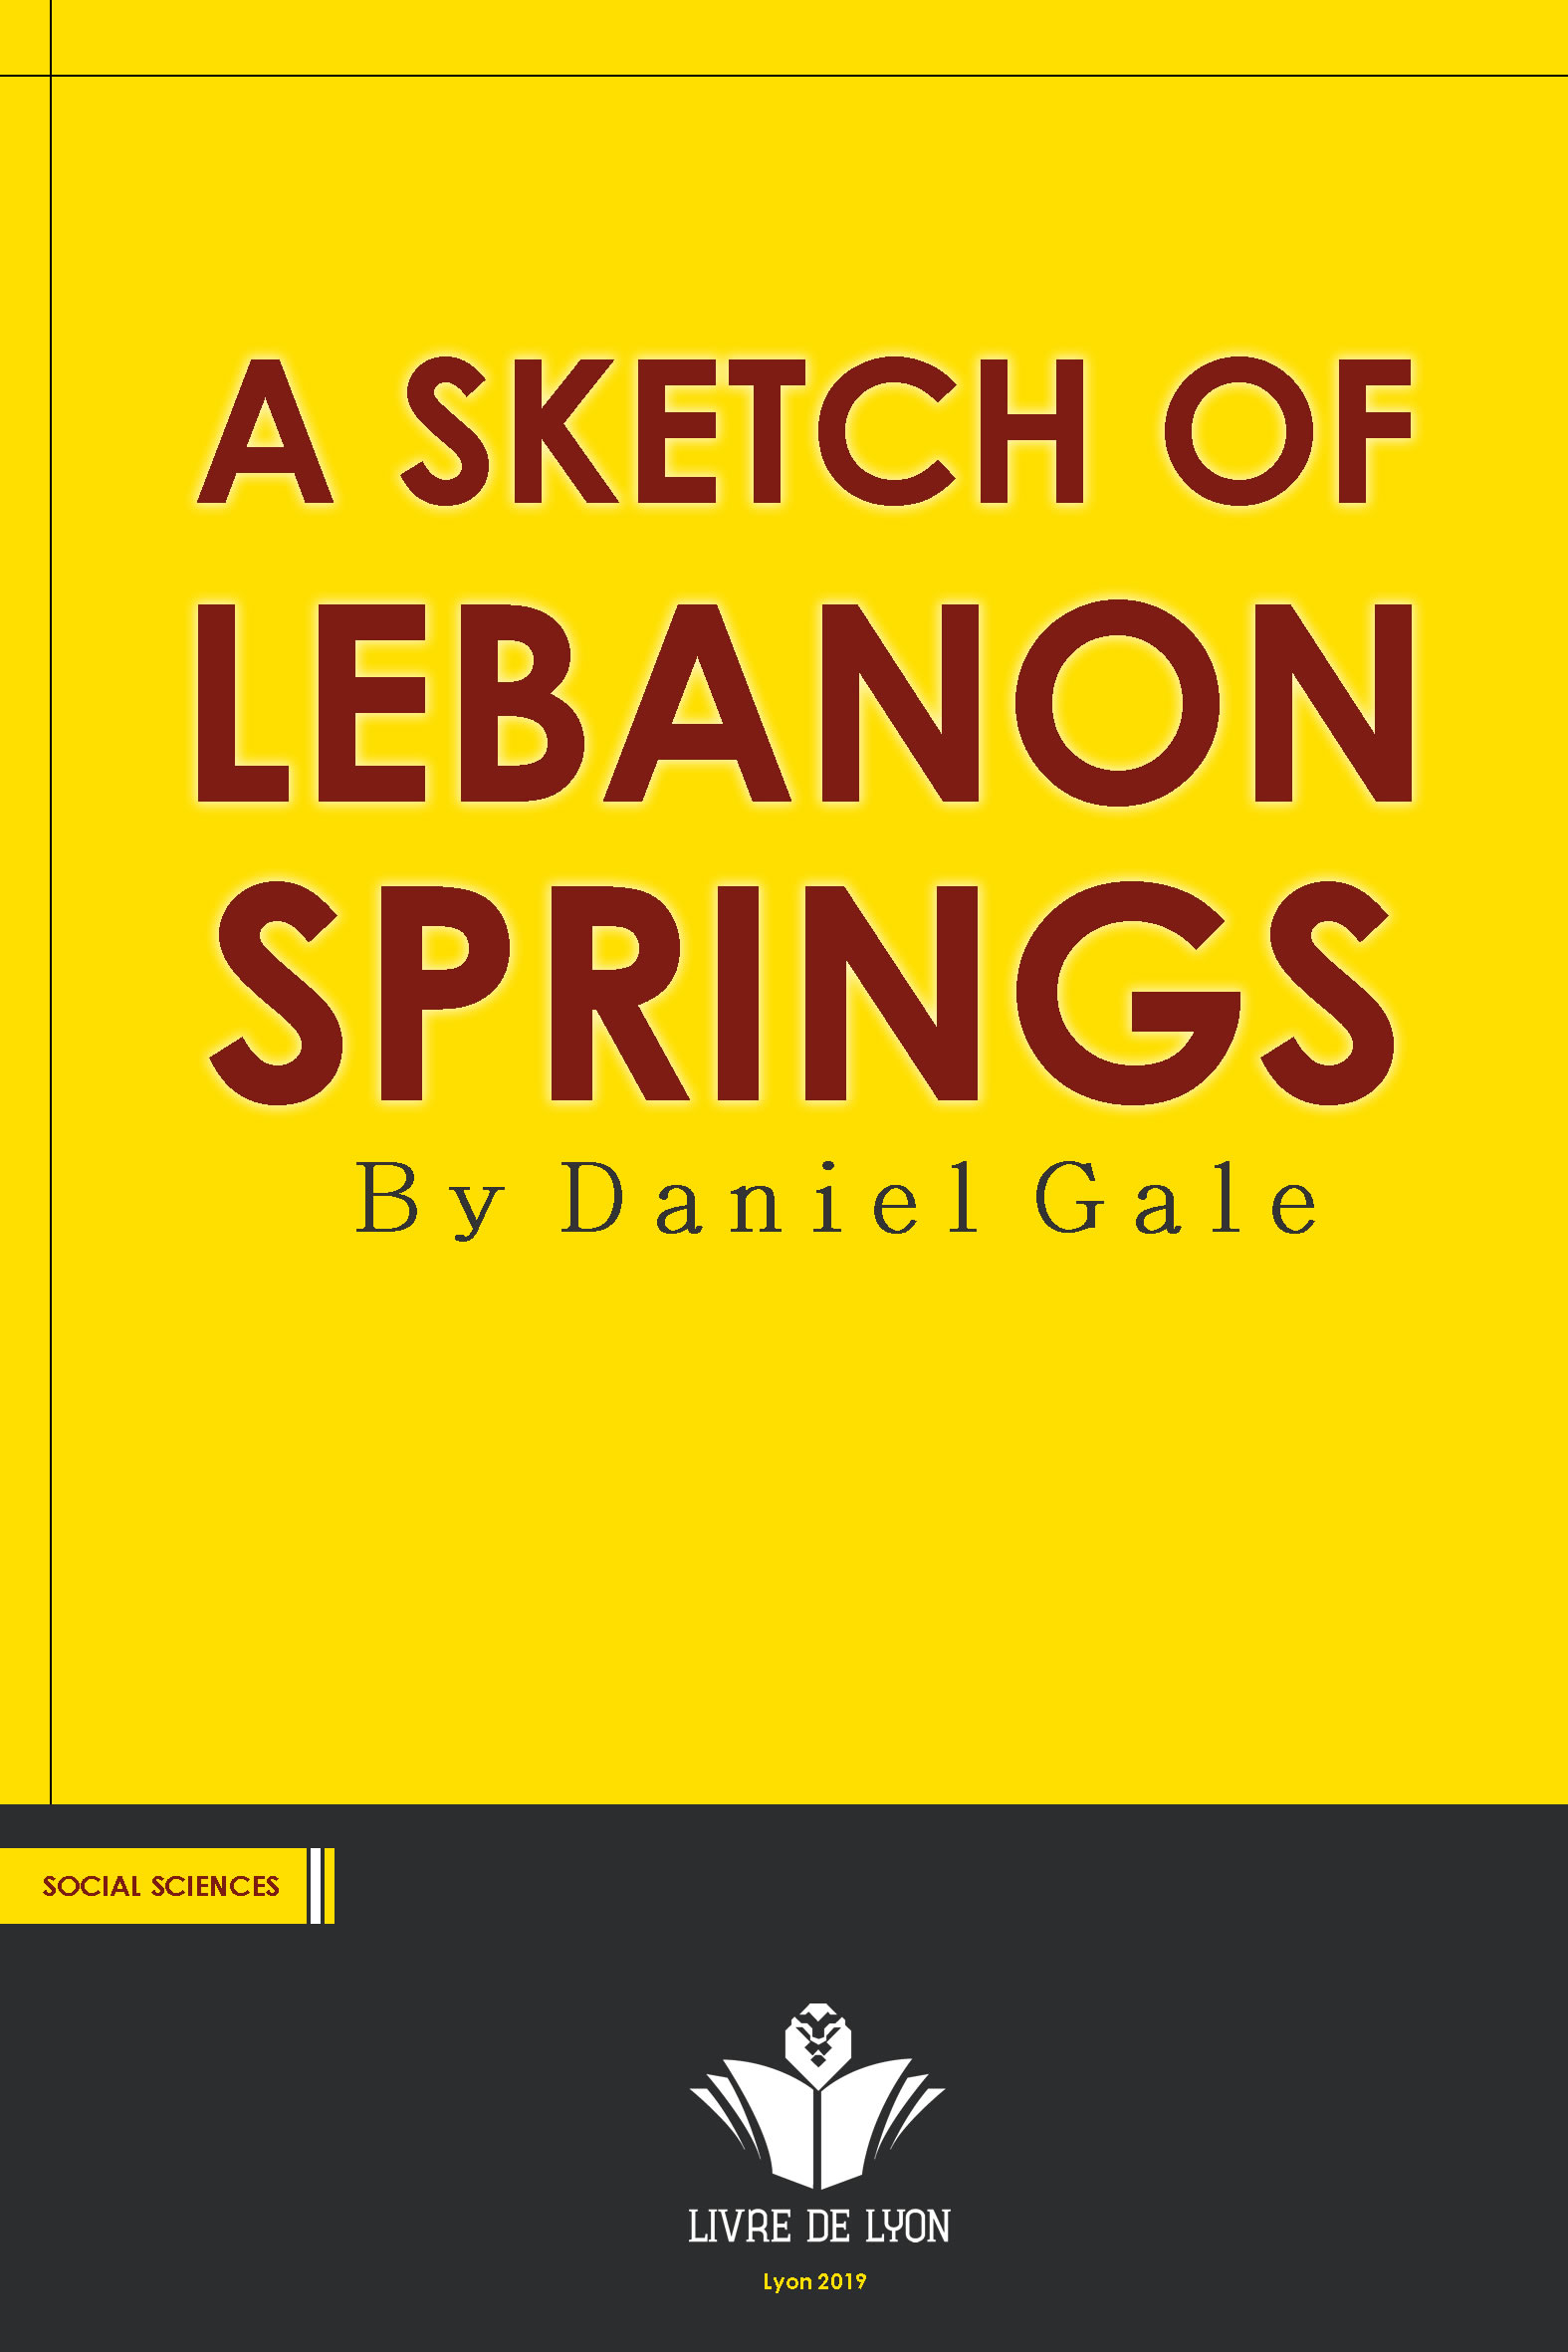 A Sketch of Lebanon Springs